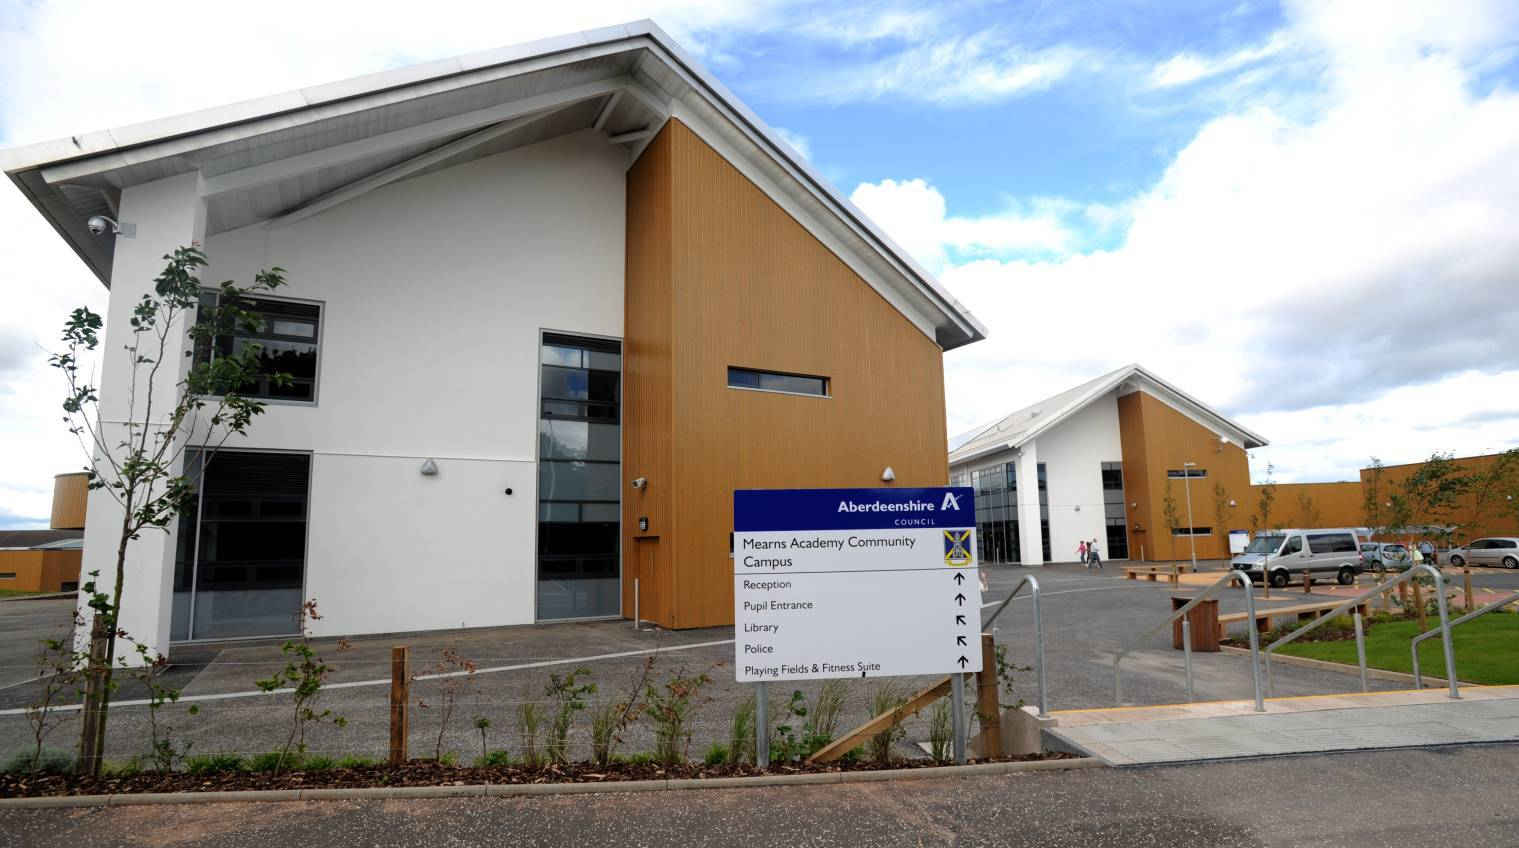 Mearns Academy Community Campus